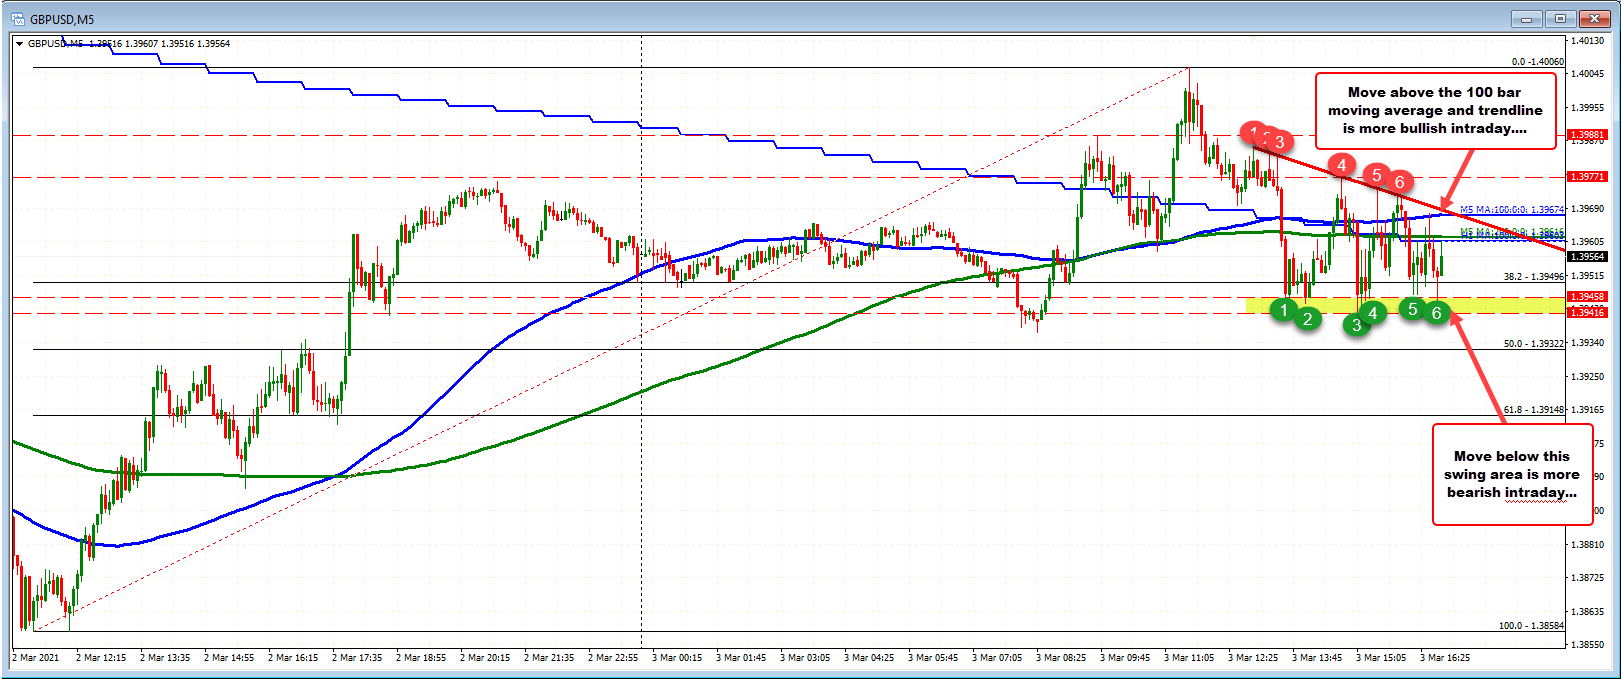 GBPUSD on the 5 minutes chart